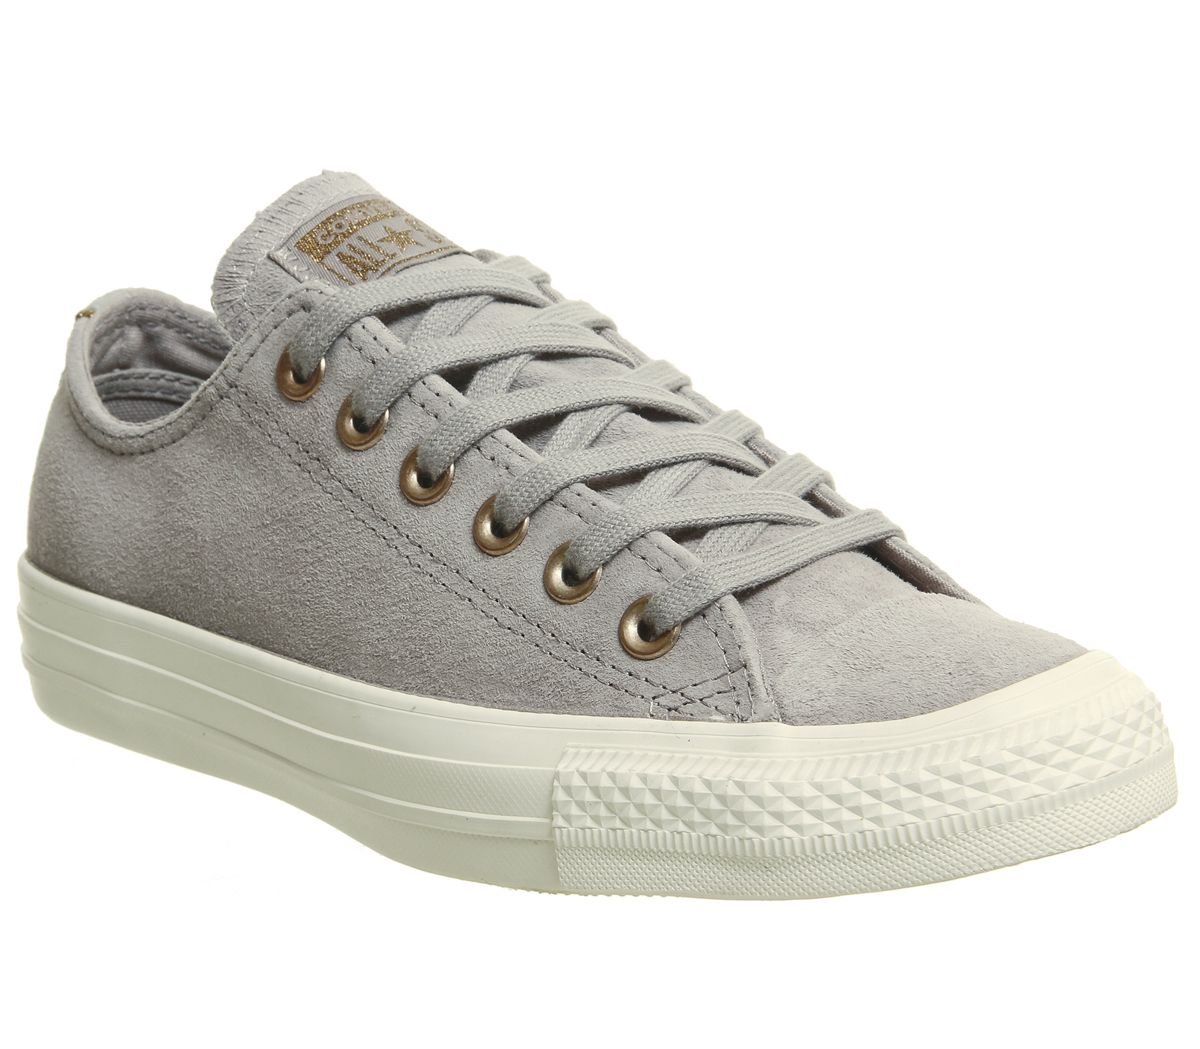 c05298592d7 Sentinel Womens Converse Grey Suede Lace Up Trainers Size UK 3.5  Ex-Display